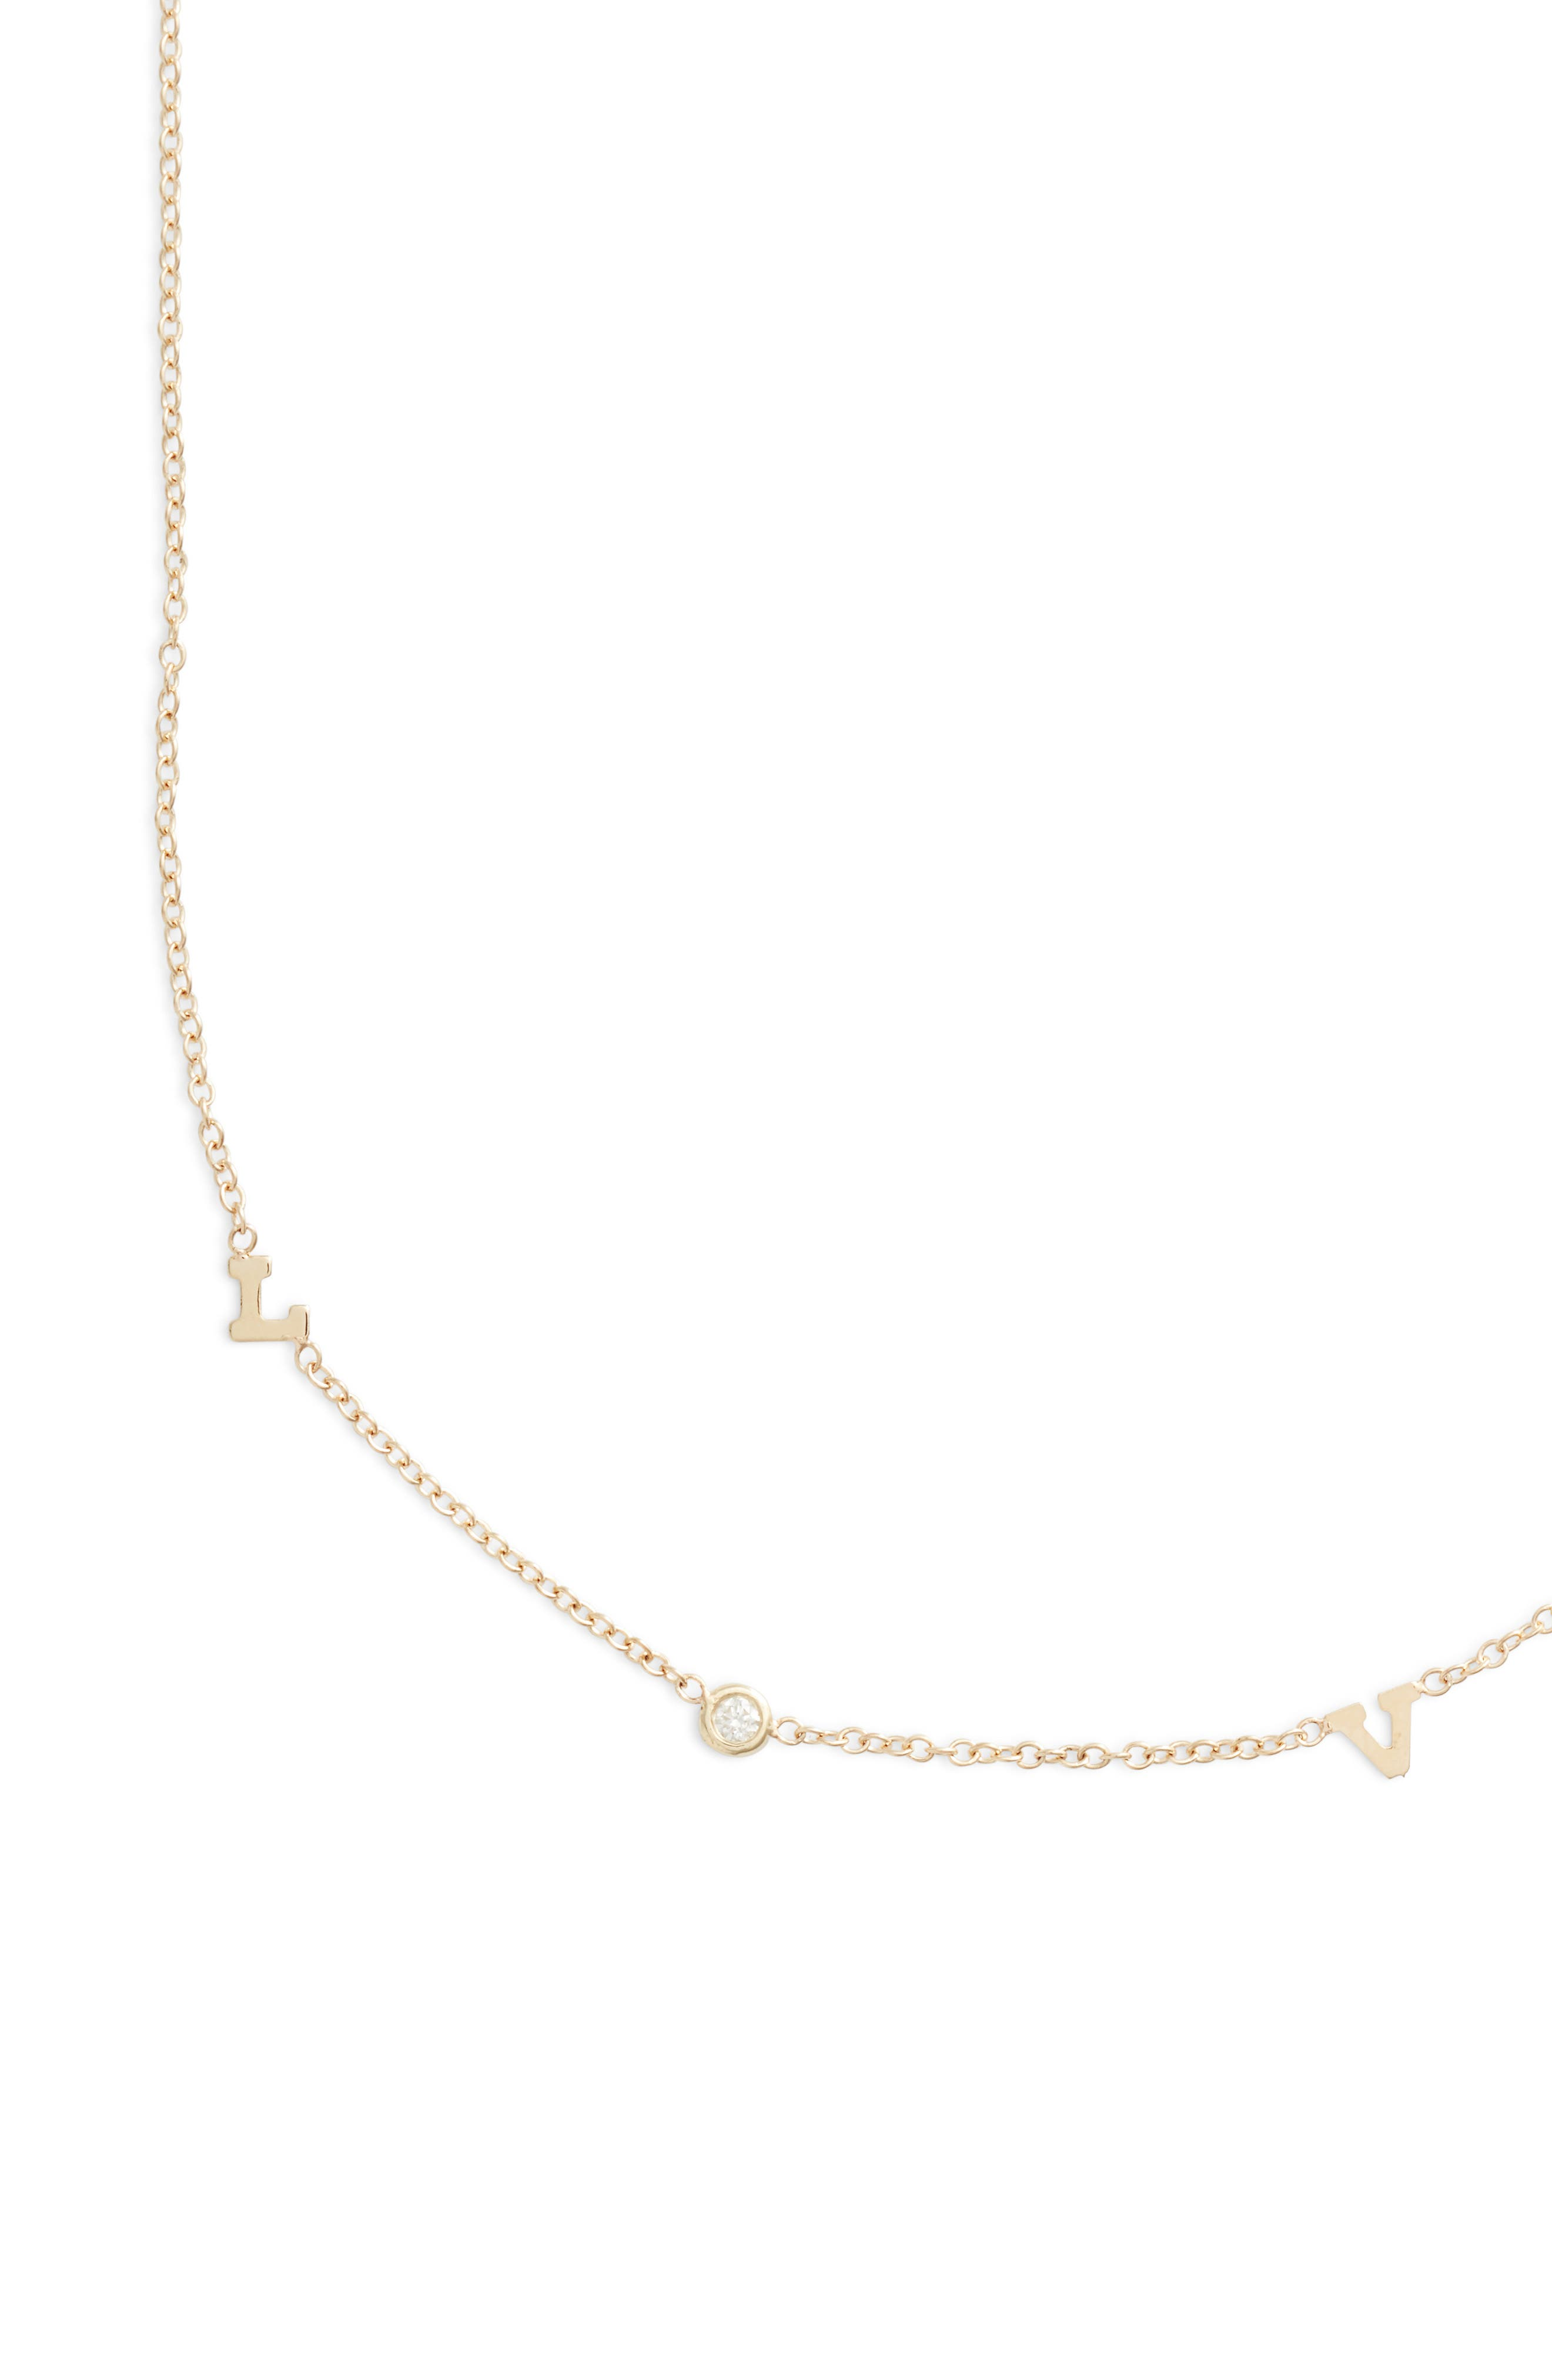 Itty Bitty Love Diamond Necklace,                         Main,                         color, YELLOW GOLD